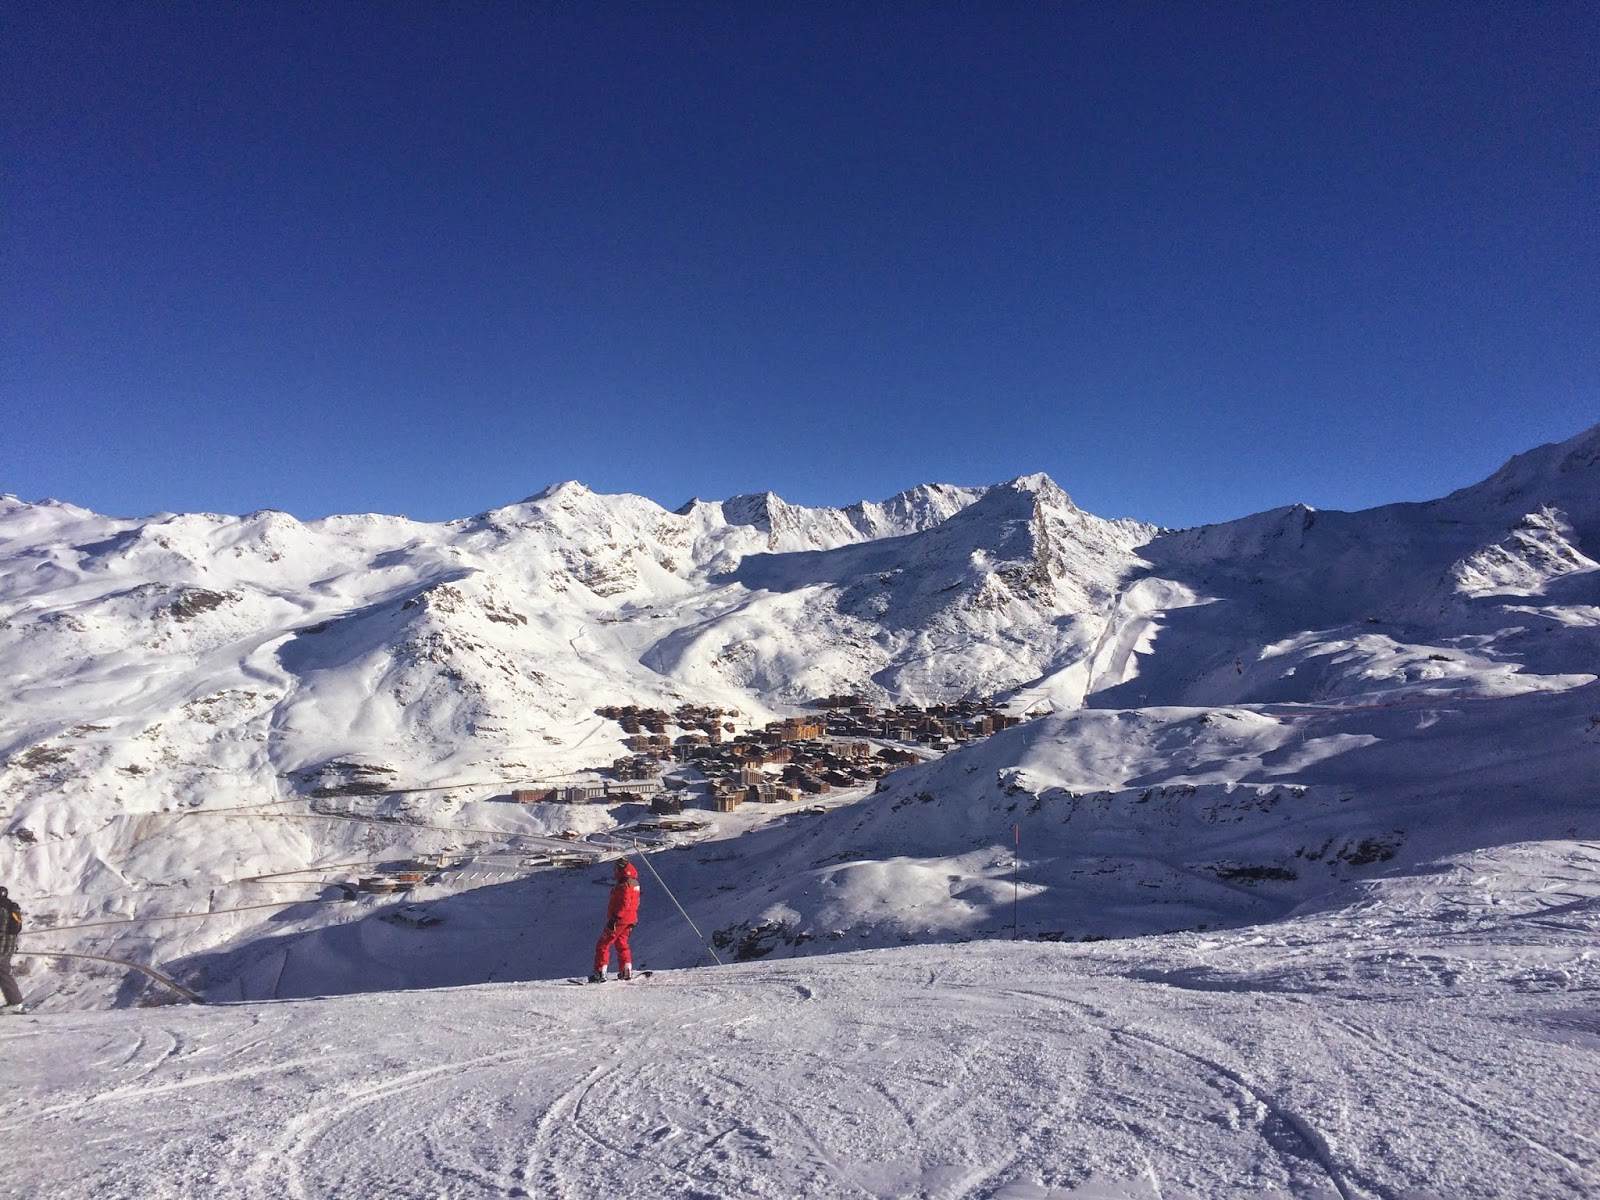 Val Thorens Village (Les 3 Vallées) France 2015 (kennethstephanie.com)